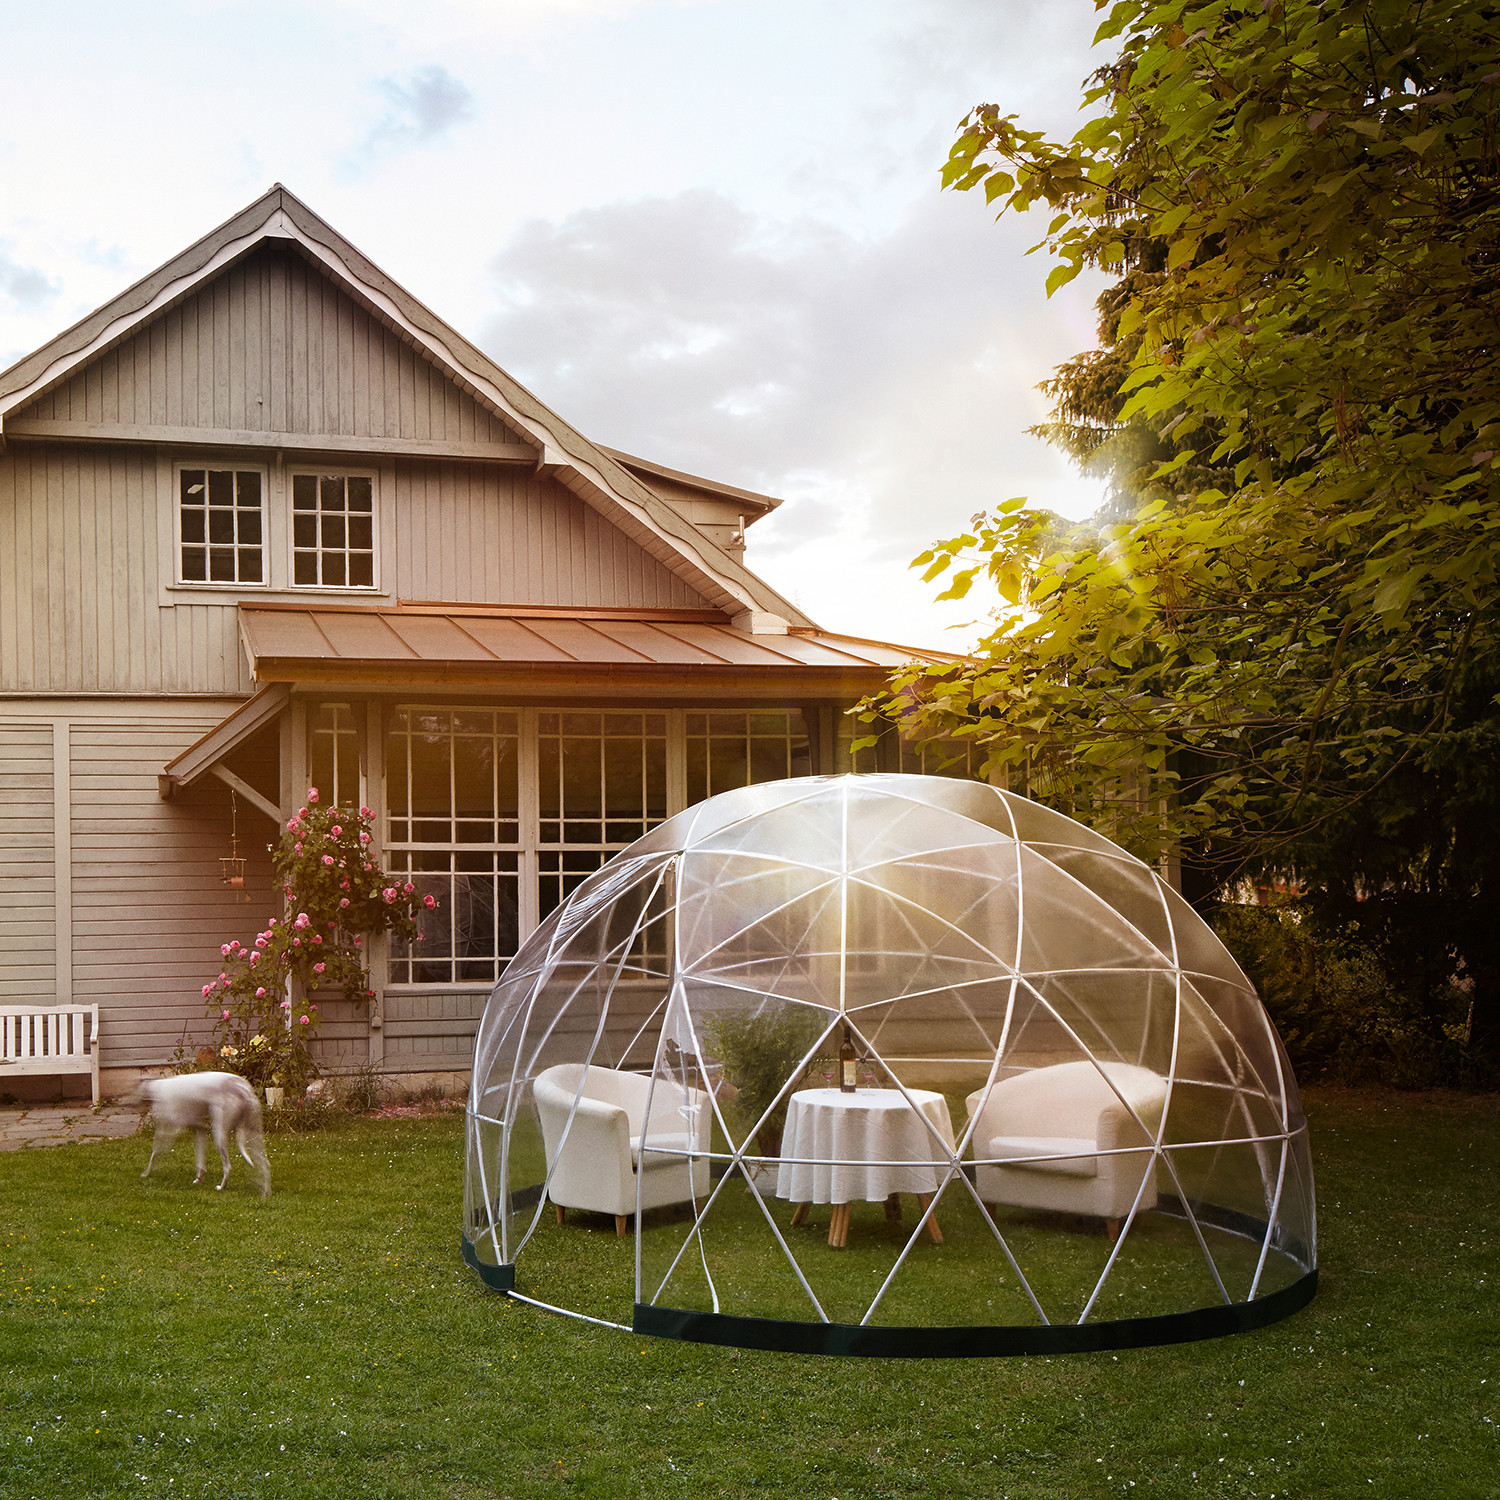 Garden Igloo - Garden Igloo - Touch of Modern